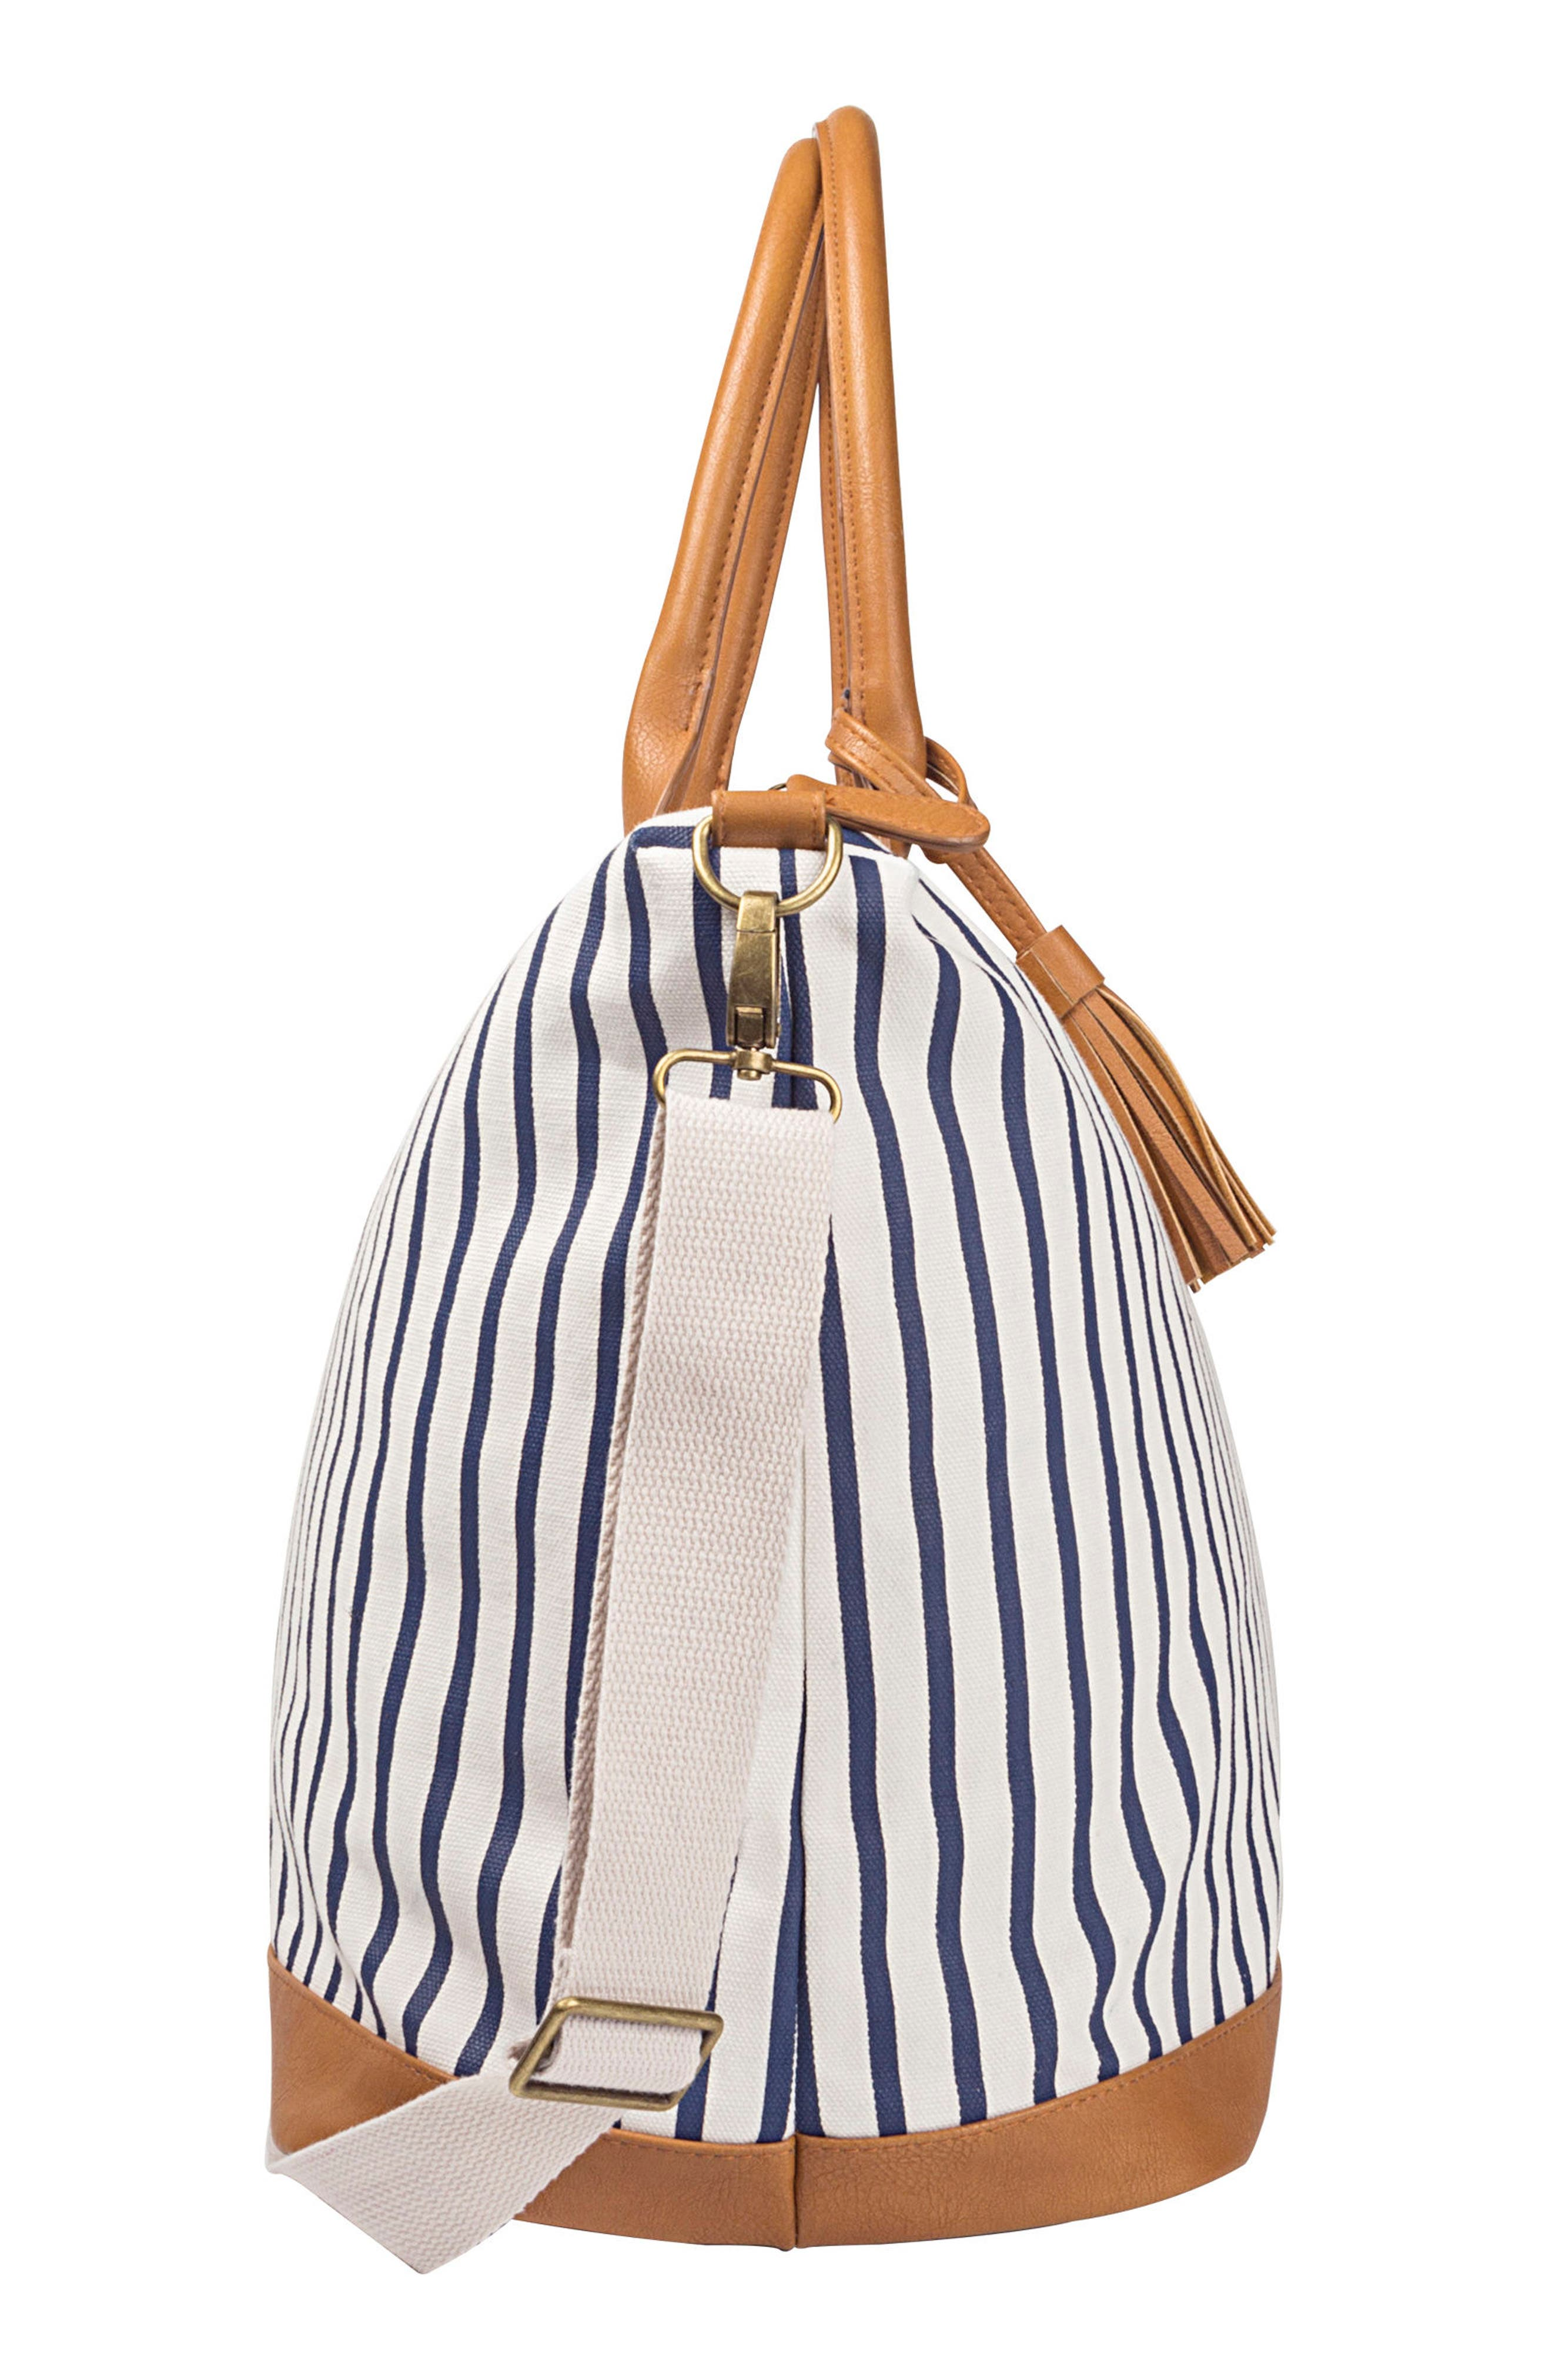 CATHY'S CONCEPTS, Monogram Oversized Tote, Alternate thumbnail 3, color, BLUE